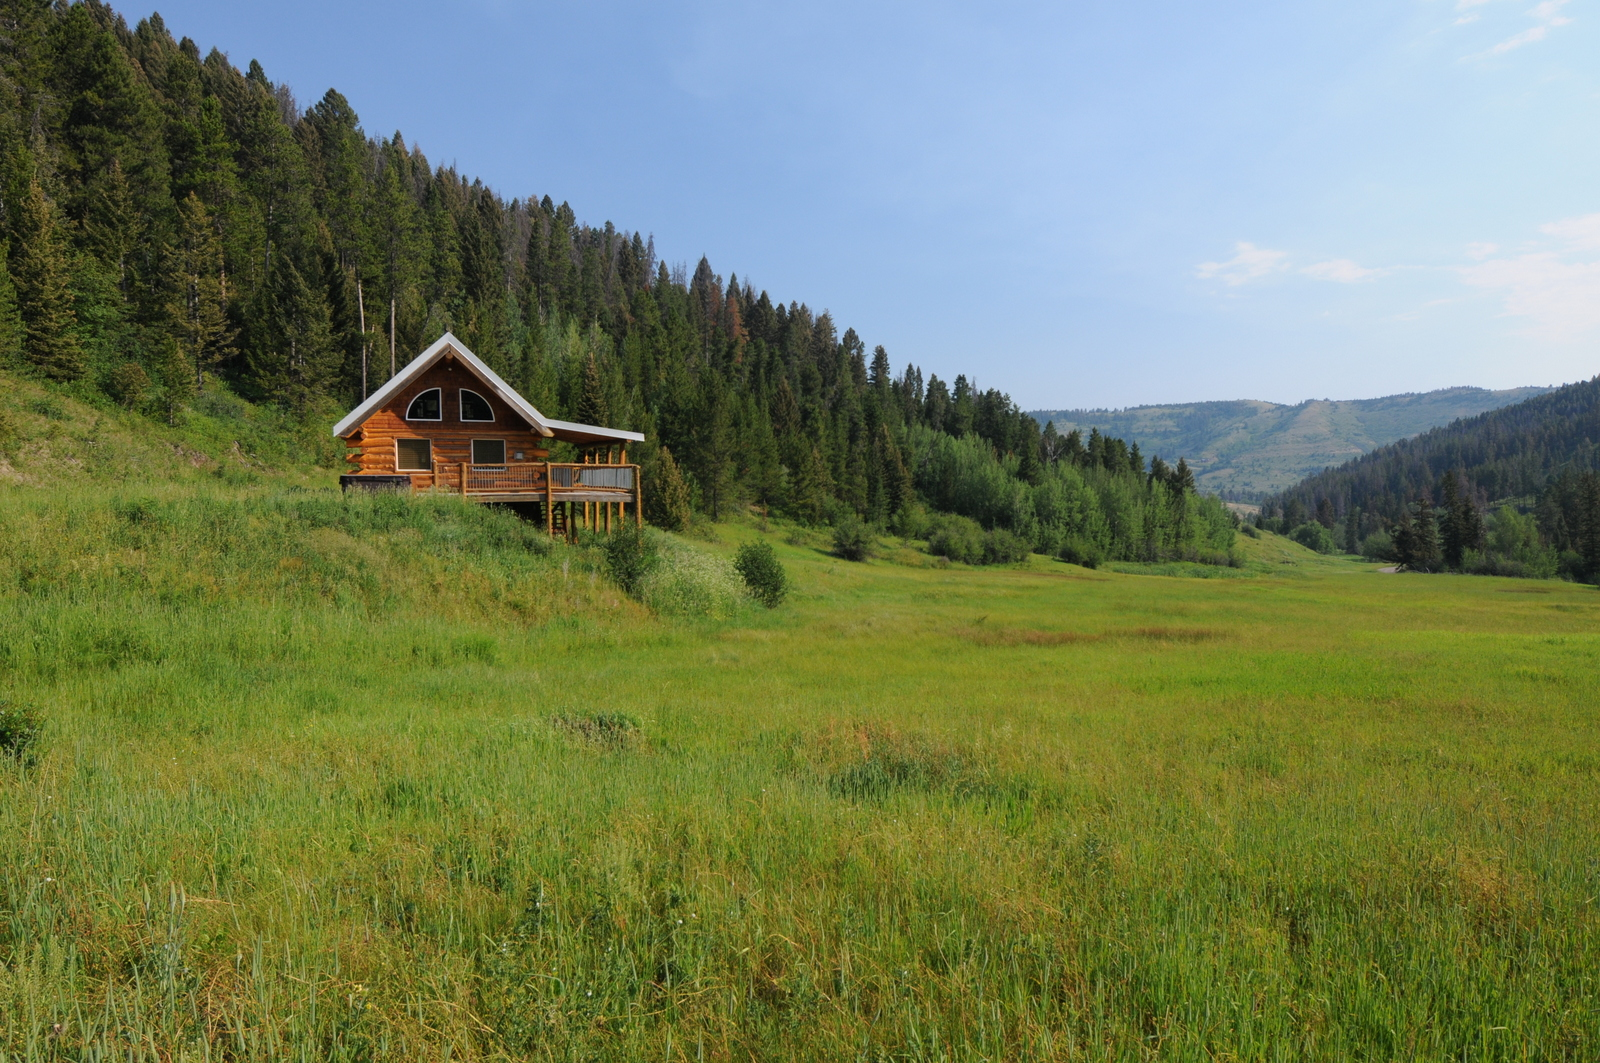 lodge historic welcome cabins front for rent tamarack in montana and